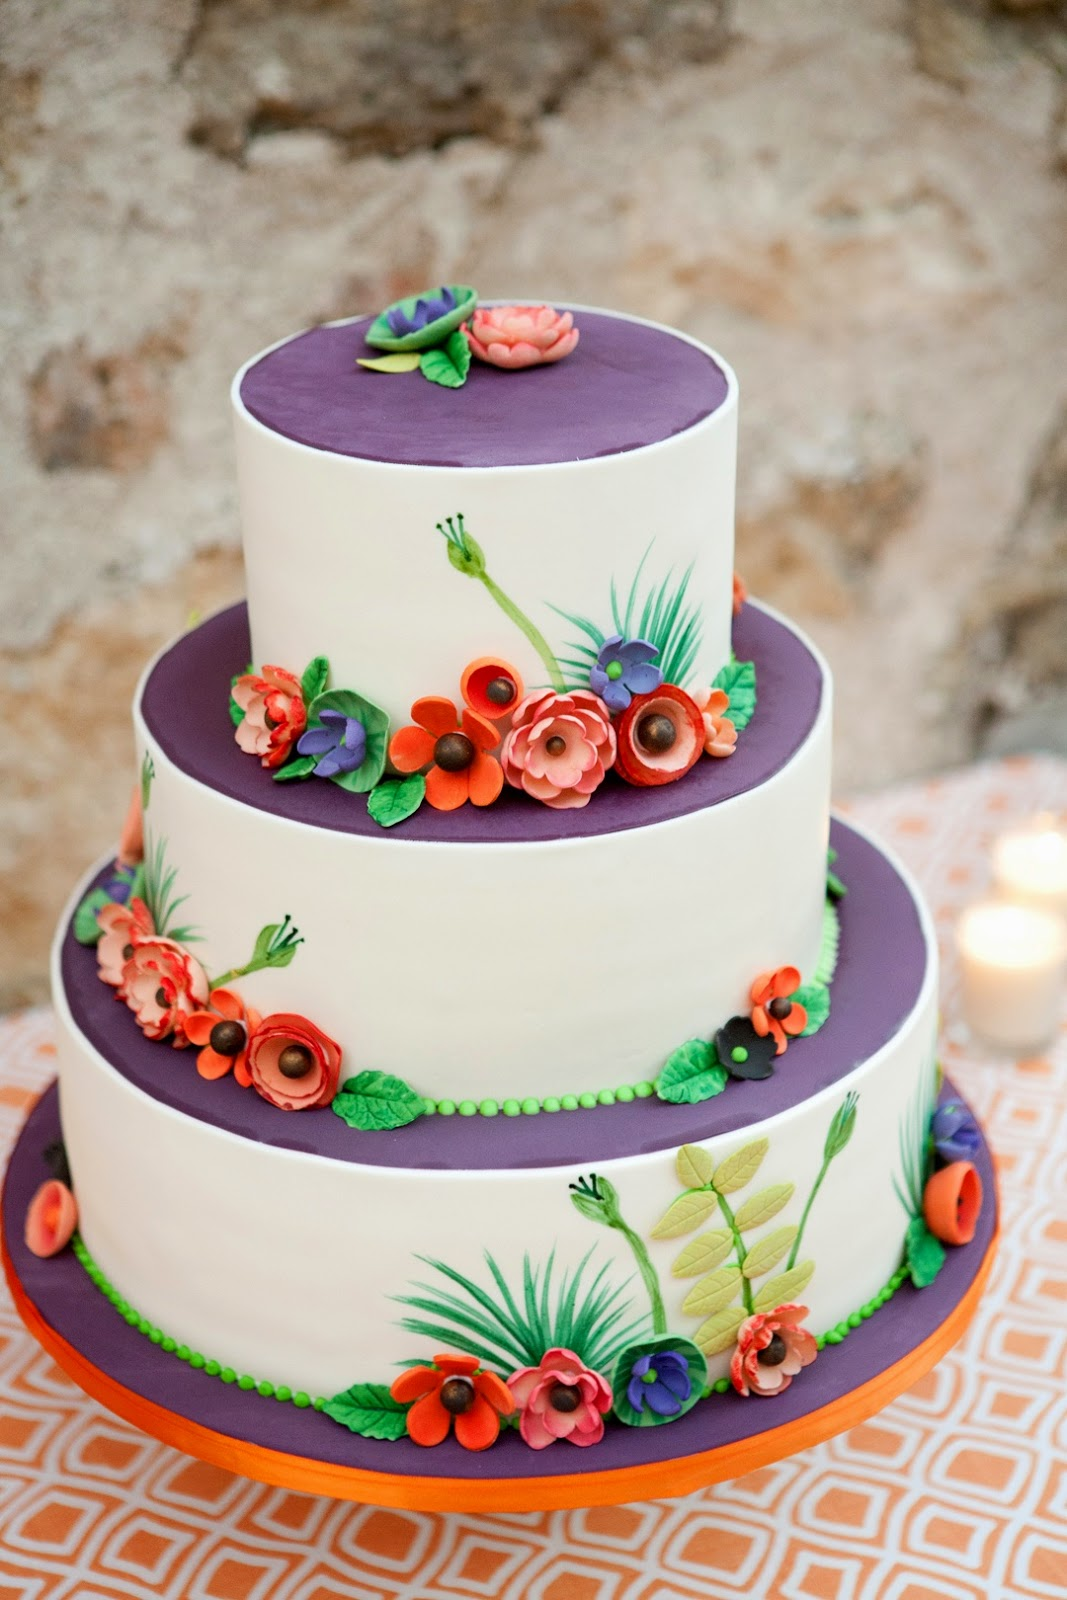 Choosing a Wedding Cake - Have You Consider These Factors?